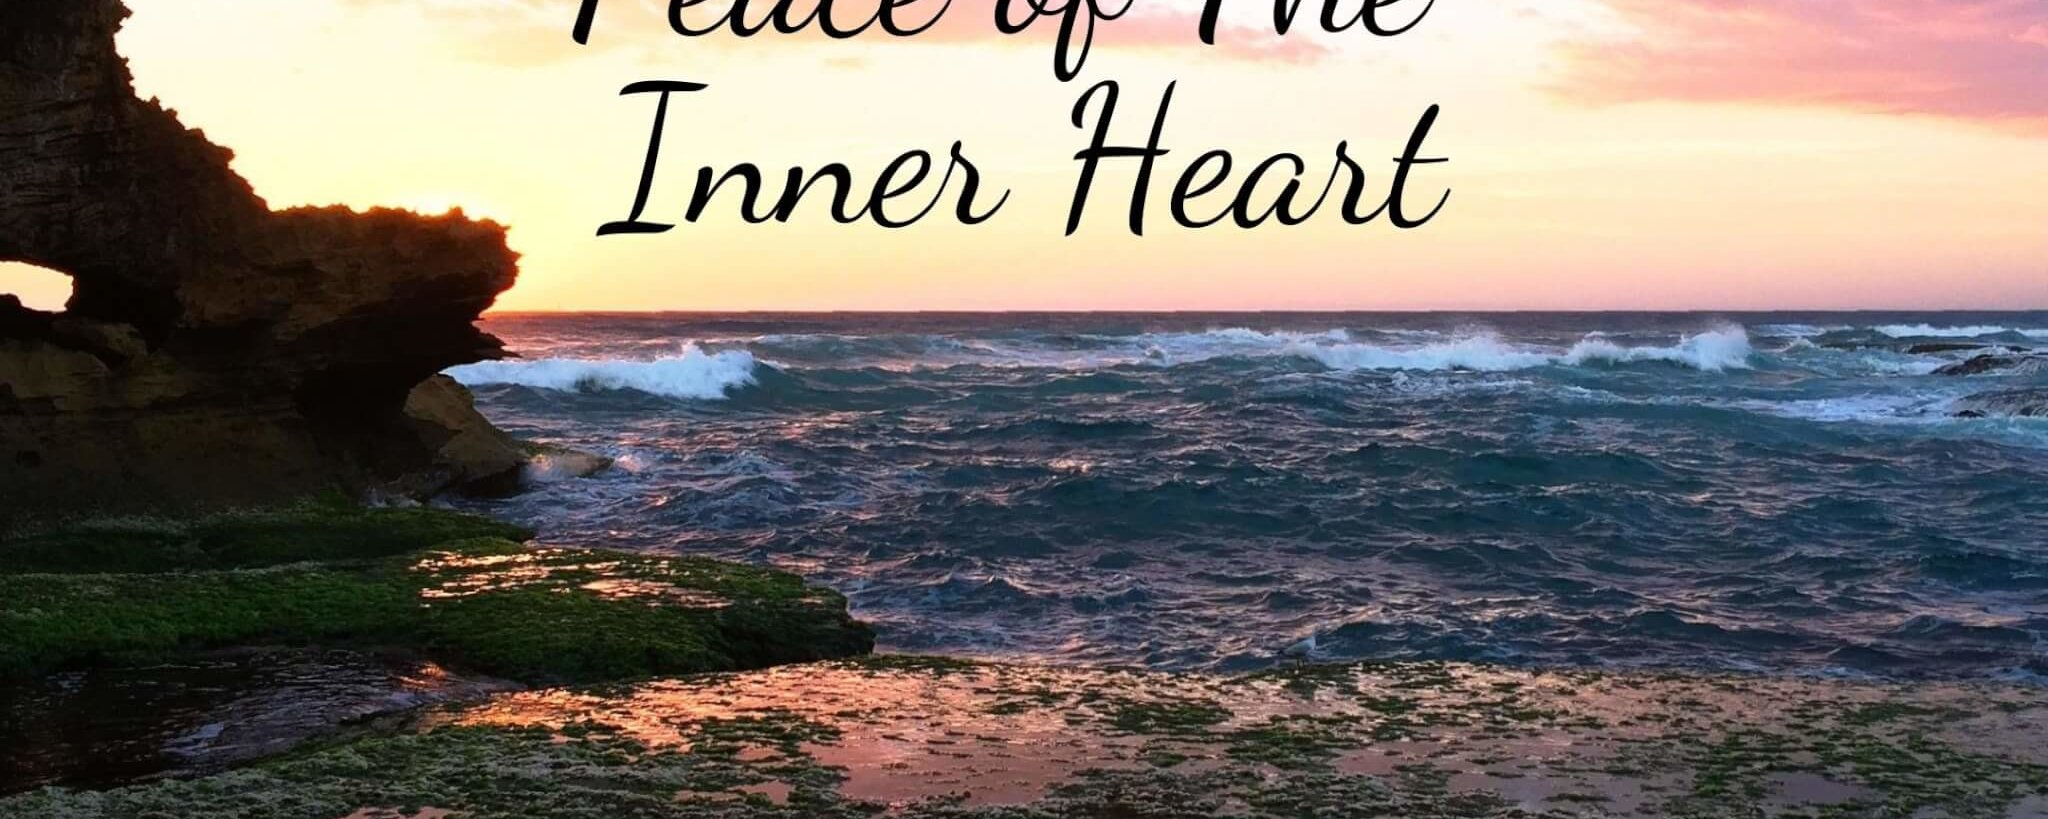 Peace of the Inner Heart